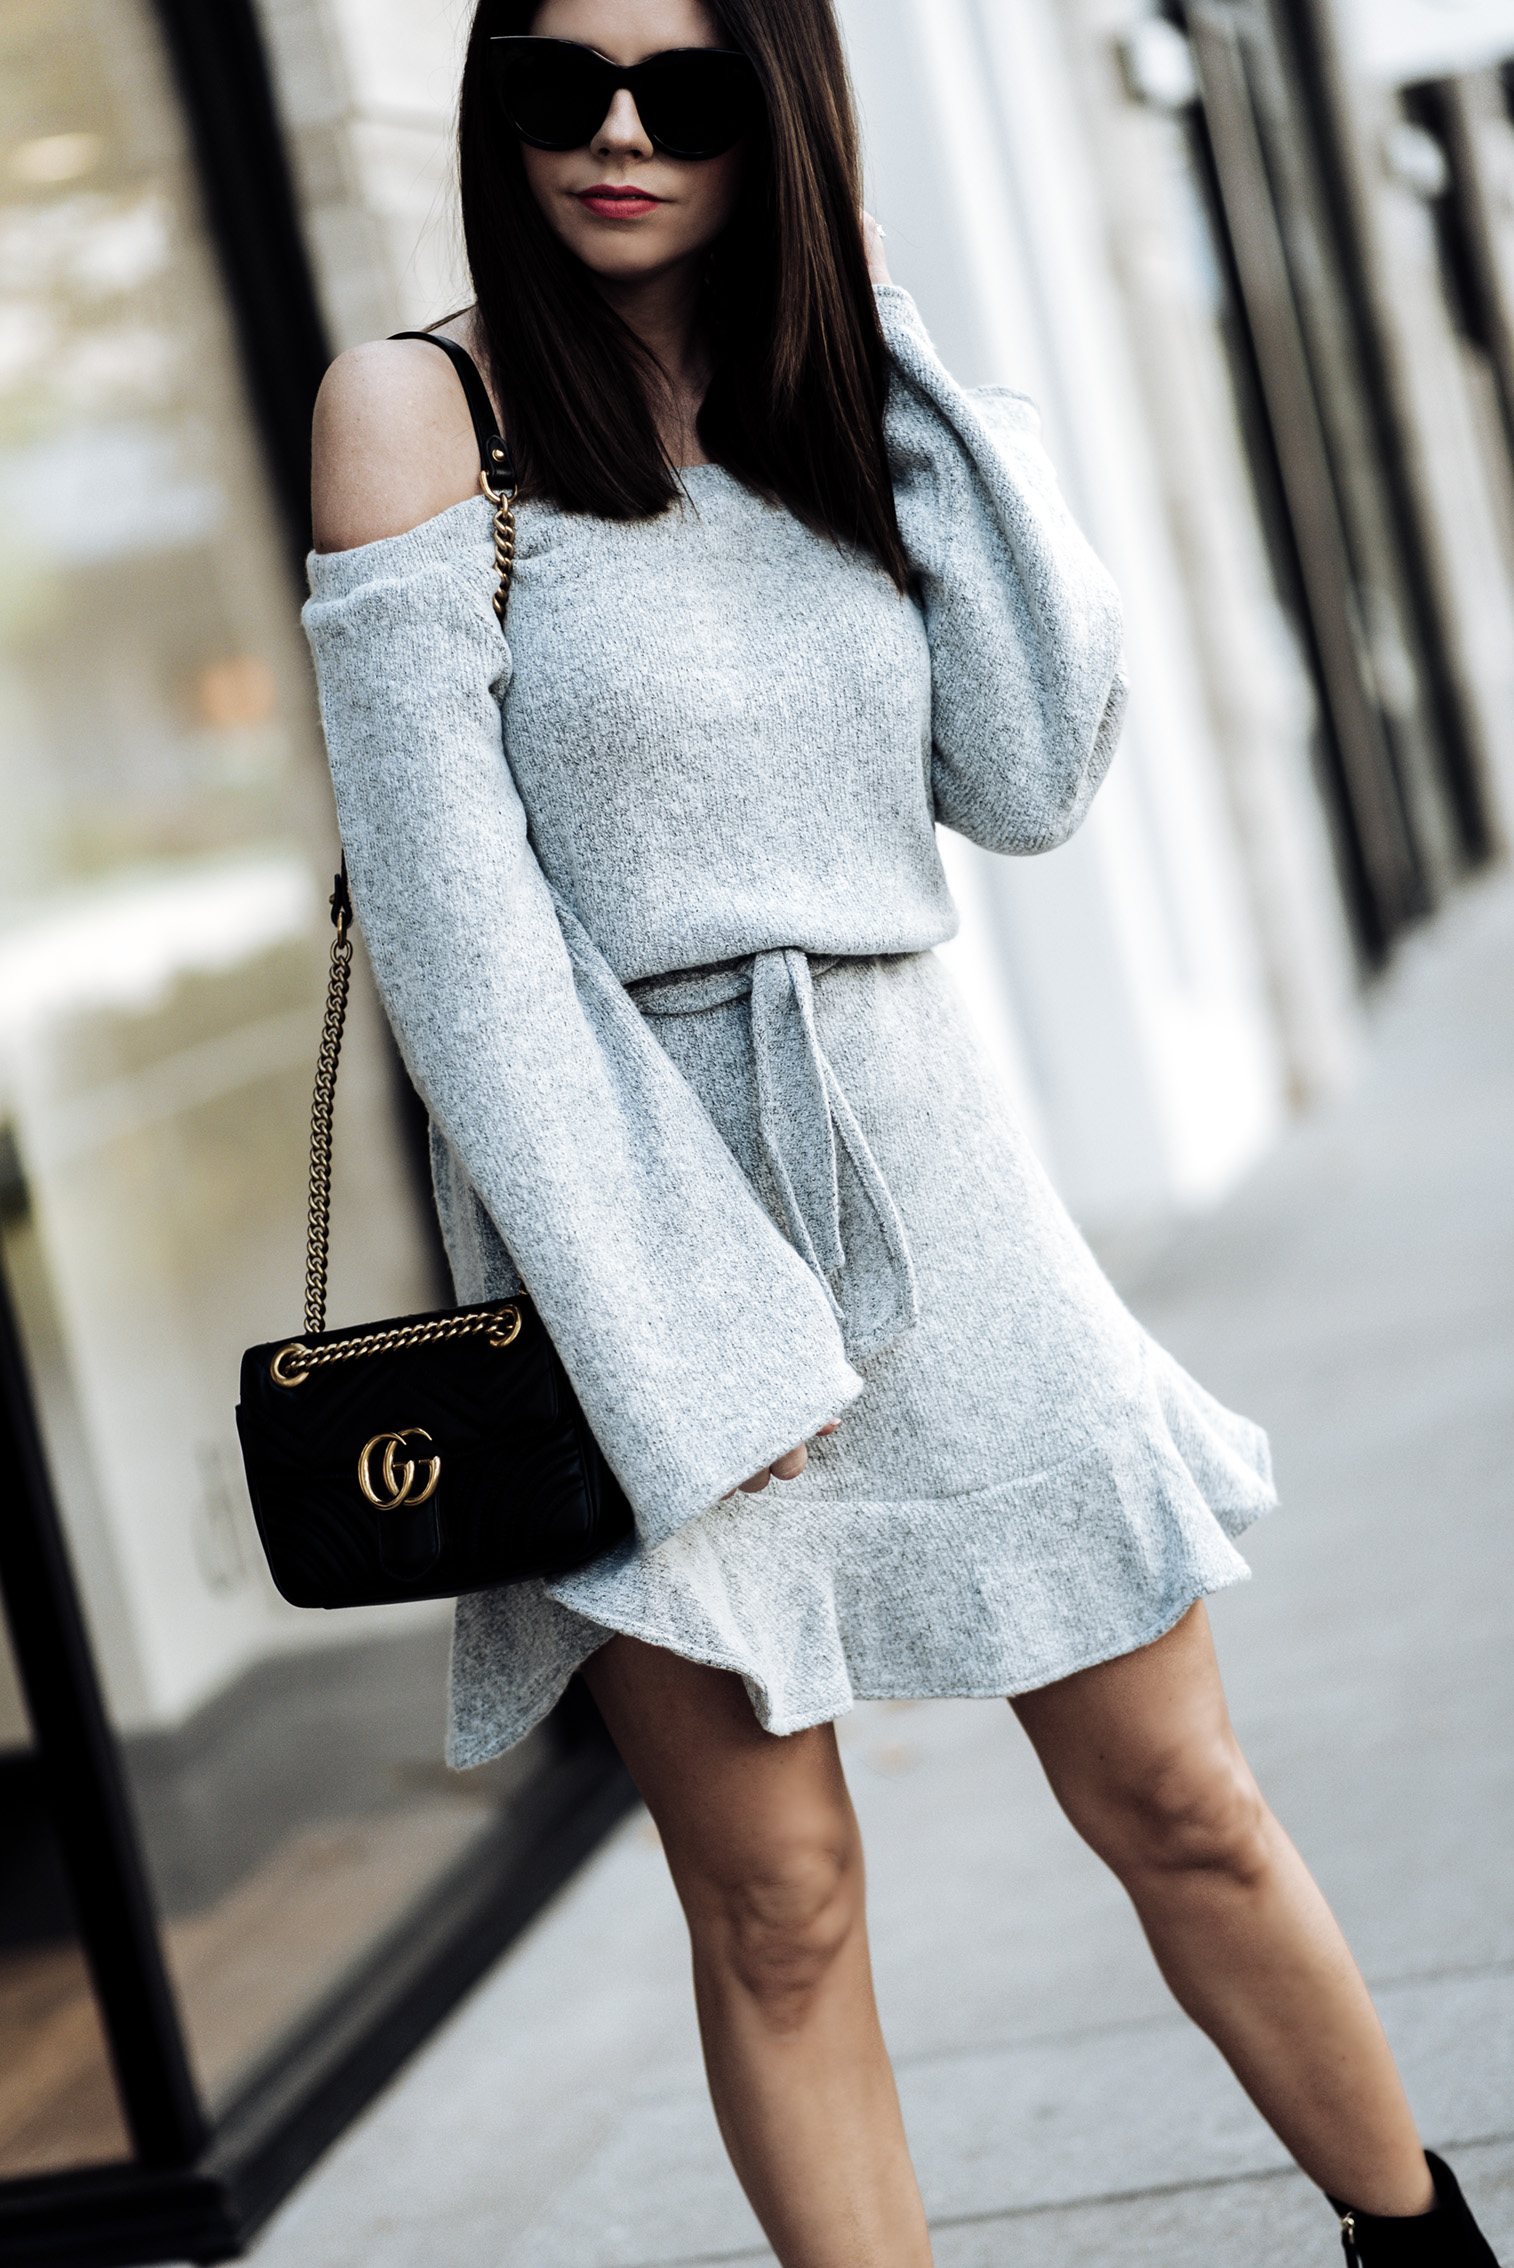 5 Sweater dresses you need this fall, click to shop the look | Grey sweater dress, M. Gemi Corsa bootie, Gucci Marmont bag in black |Tiffany Jais fashion and lifestyle blogger of Flaunt and Center | Houston fashion blogger | Streetstyle blog